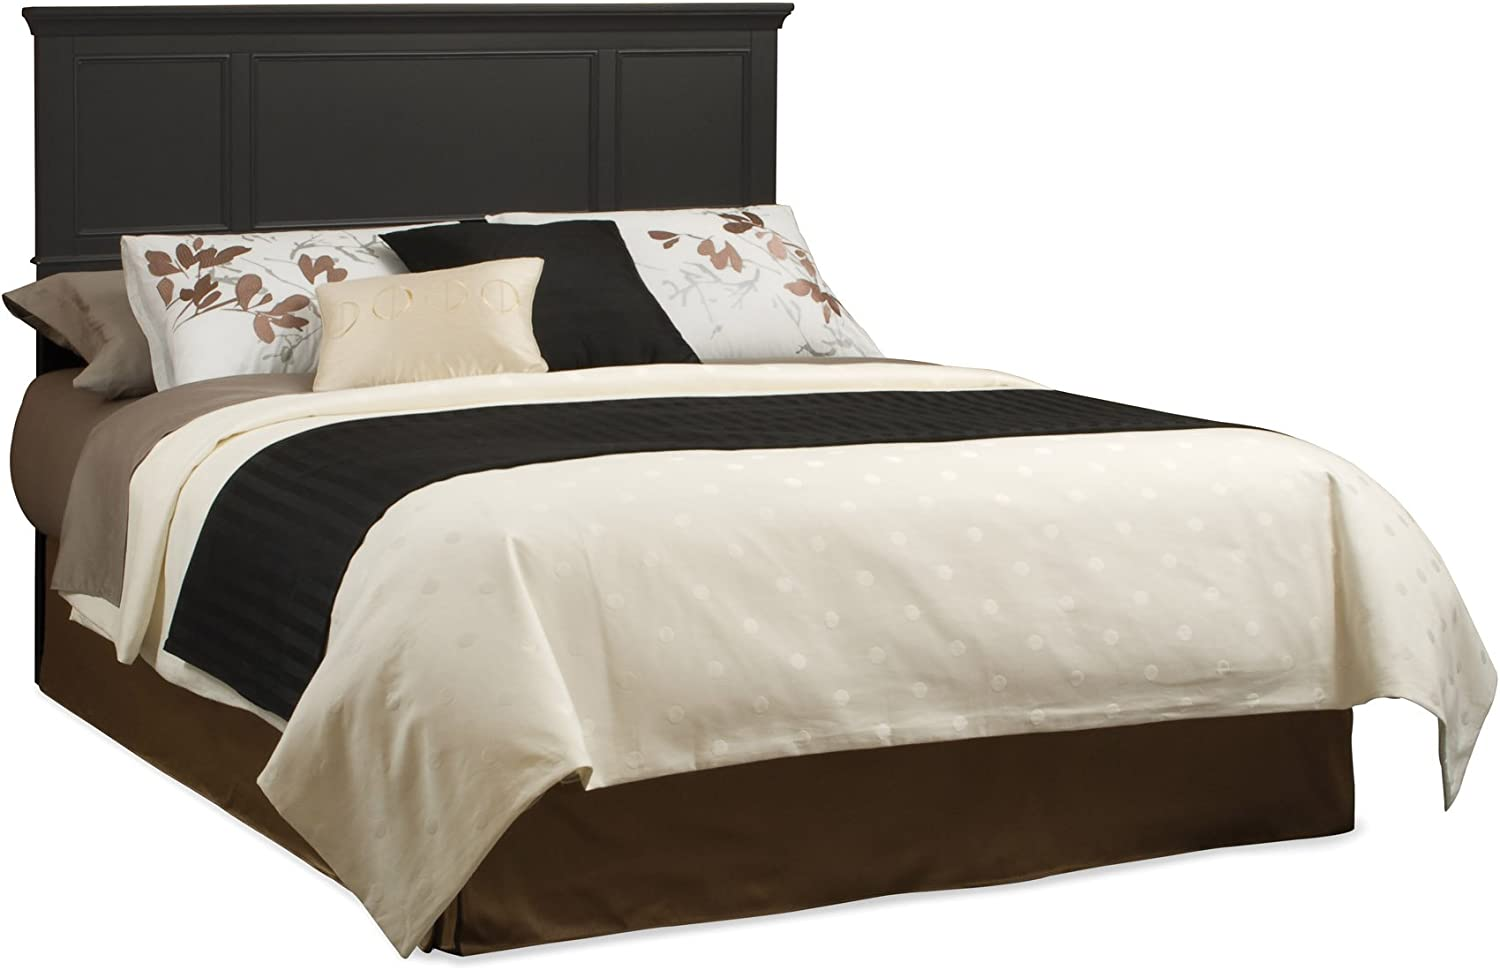 Home Styles Bedford King Bed Headboard, in Black Finish Constructed from Hardwood Solids with Raised Panel Design